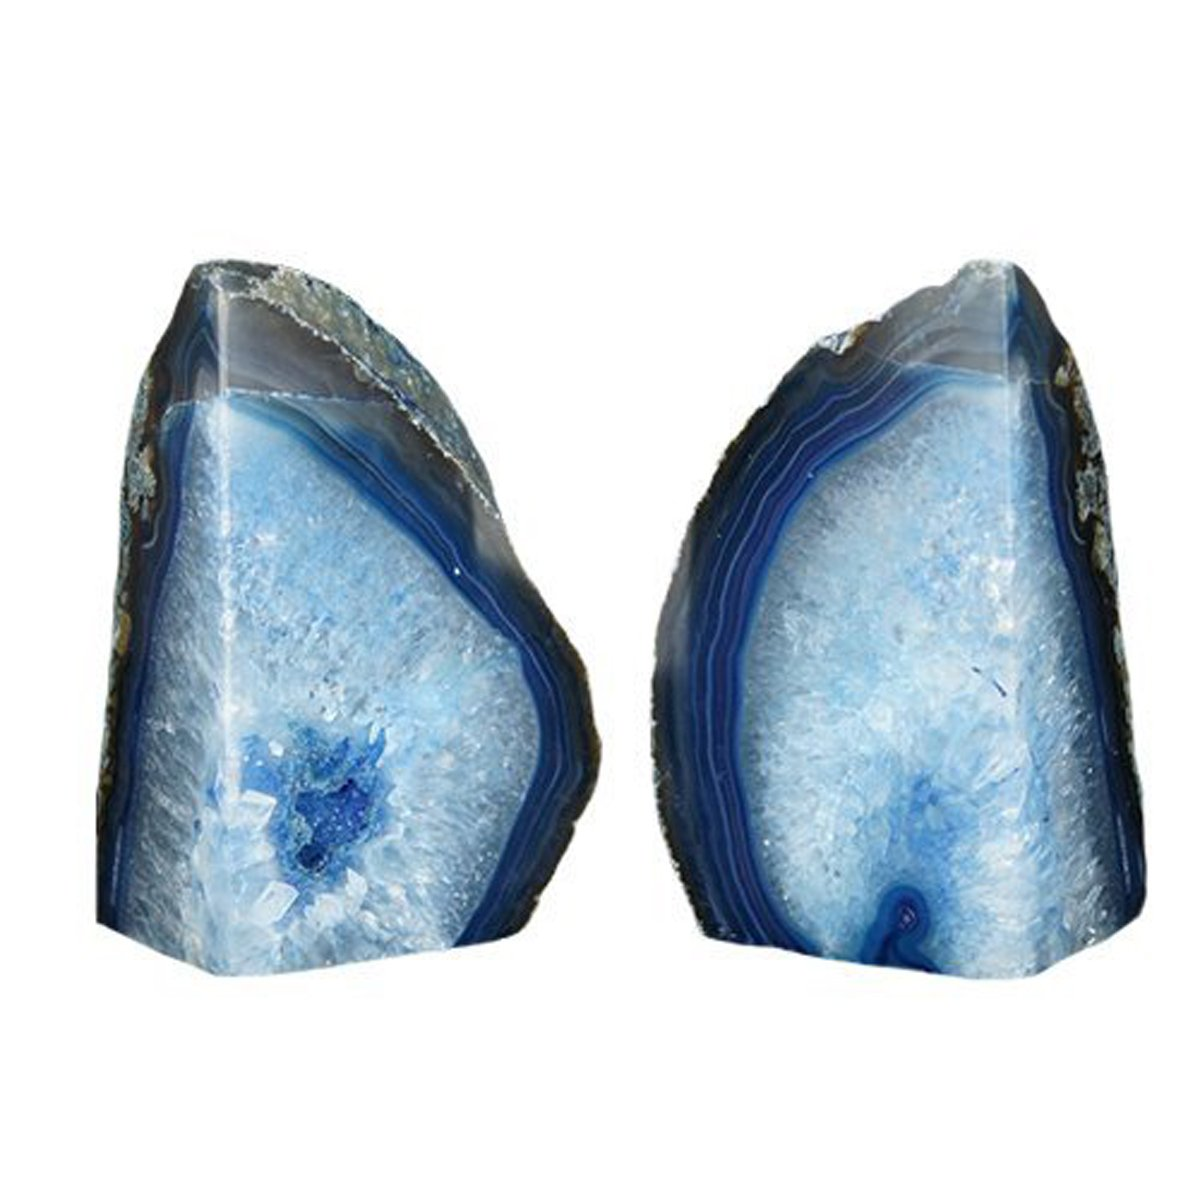 JIC Gem: Polished Dyed Blue Agate Bookend(s) - 1 Pair - 6 to 8 Lbs